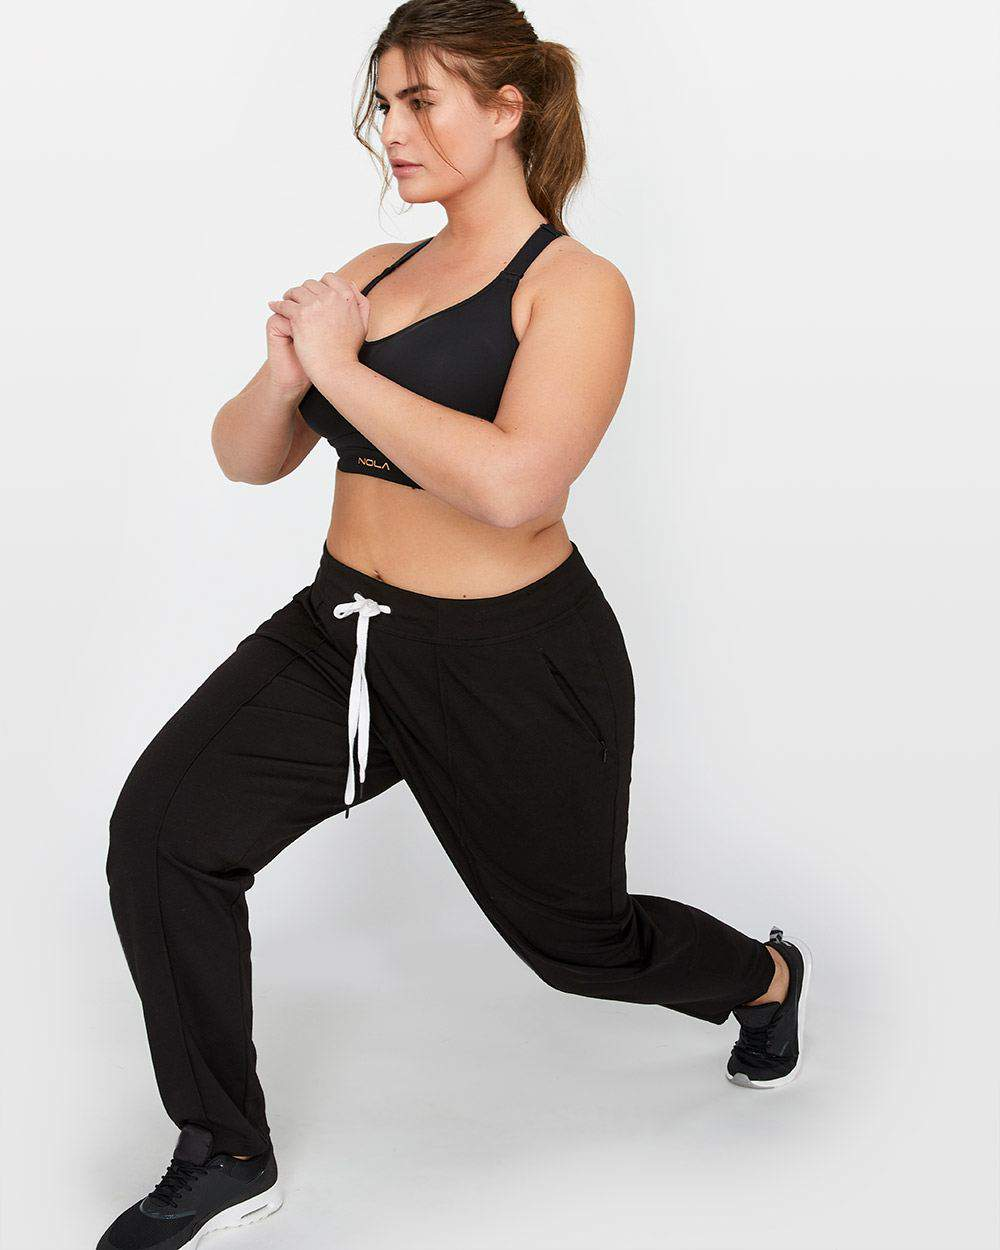 828b4c1f54c7f Function   Style  Plus Size Activewear to Jumpstart Your Fitness Goals